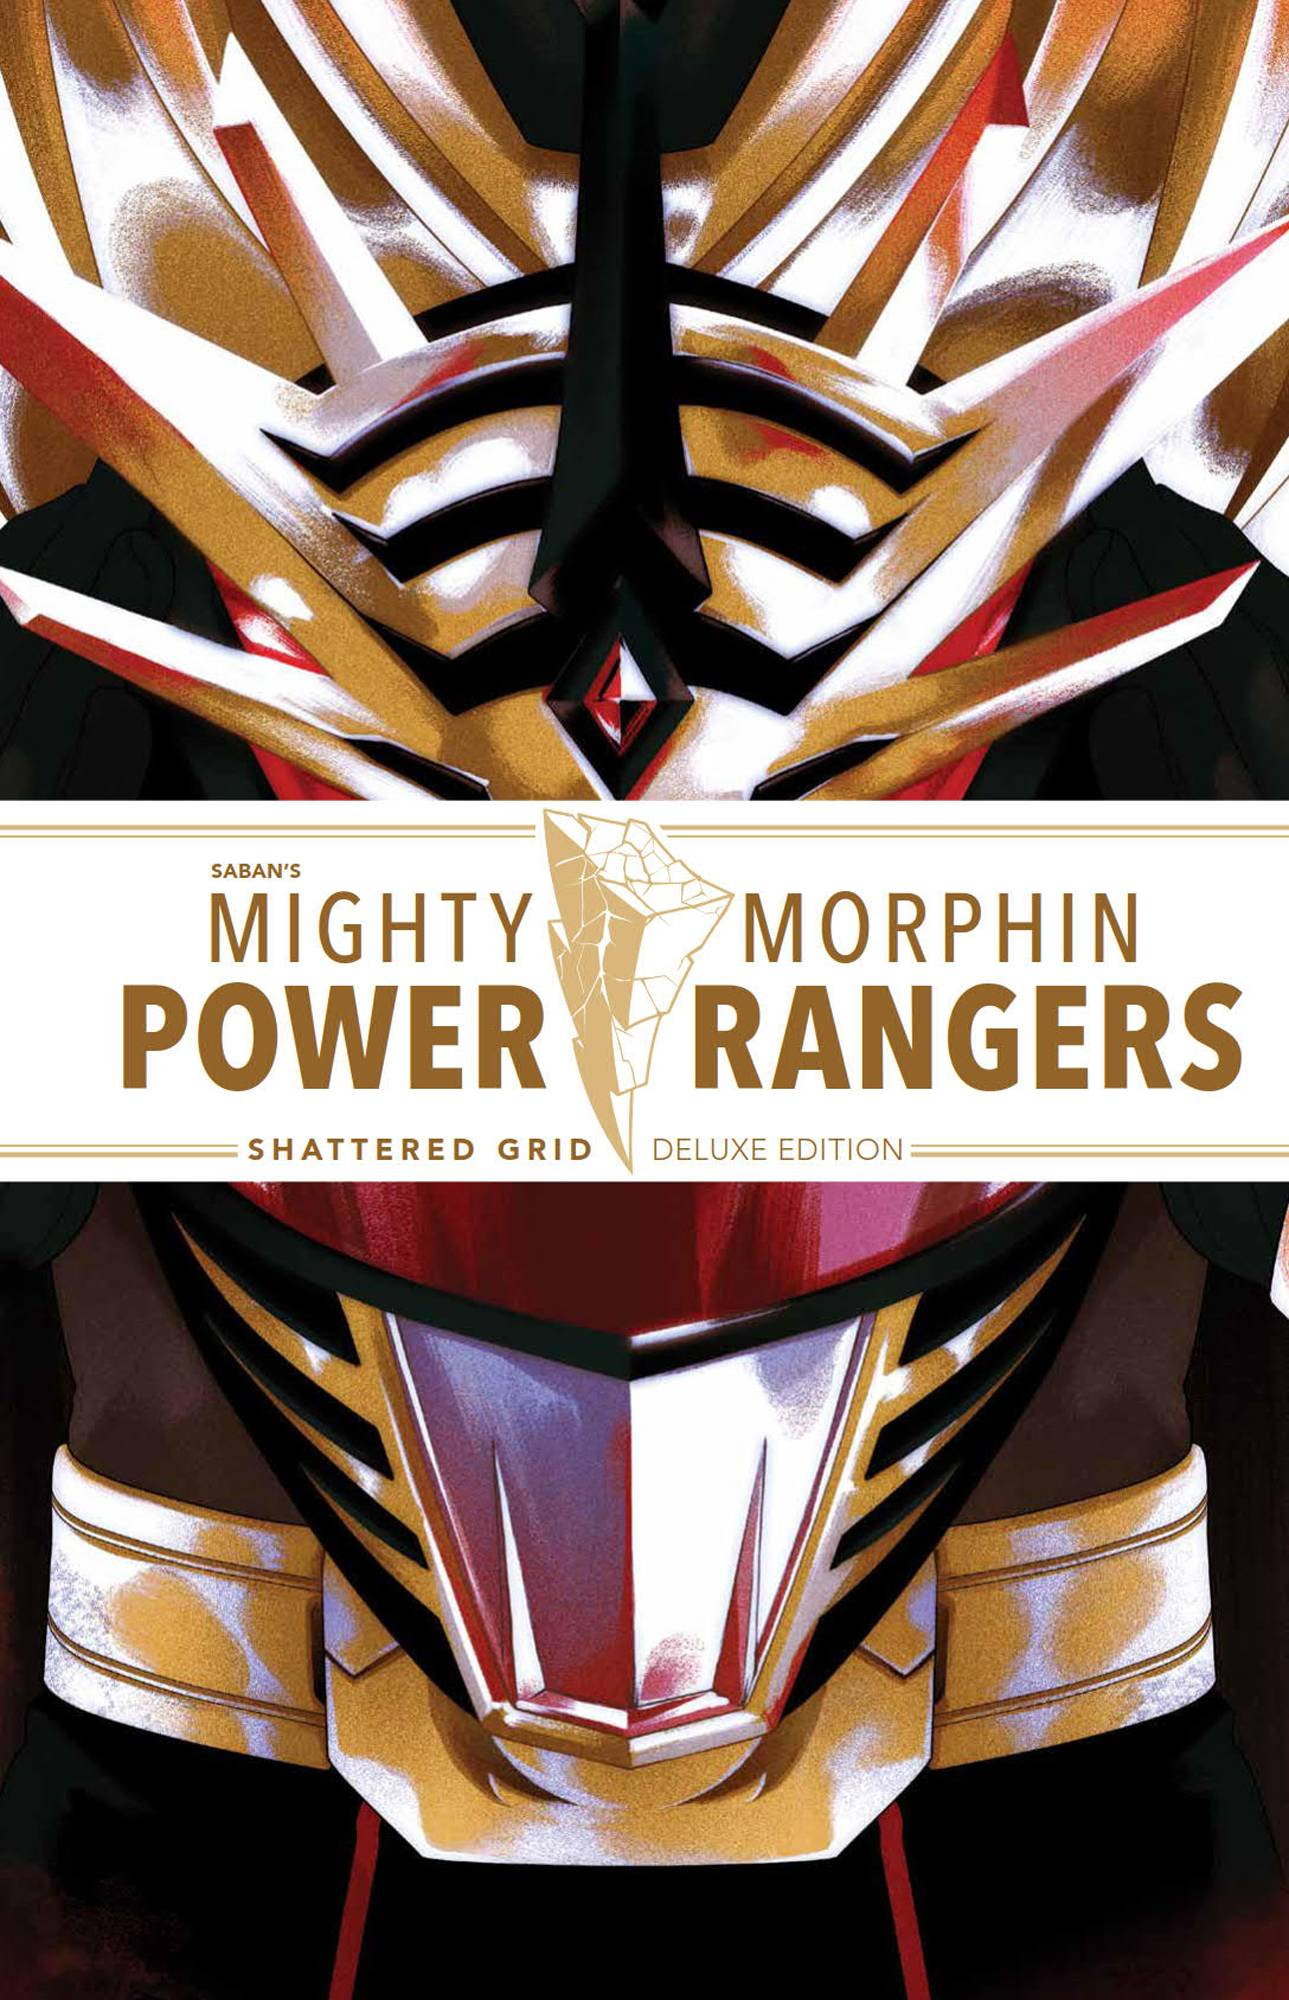 MIGHTY MORPHIN POWER RANGERS DLX HC SHATTERED GRID (BF)